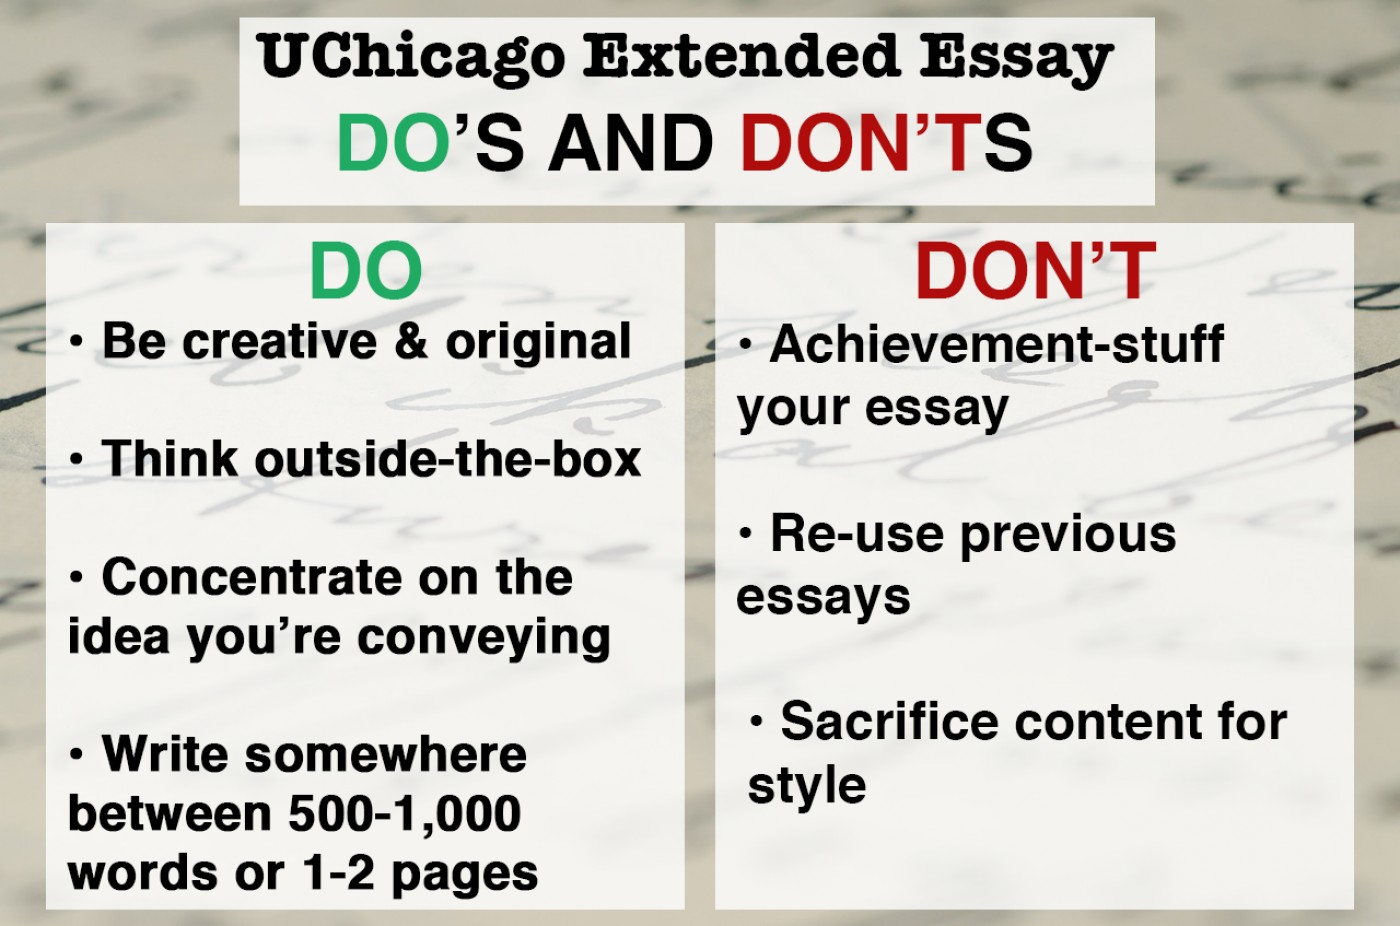 002 Essay Example Why Fearsome Uchicago College Confidential Reddit Length 1400